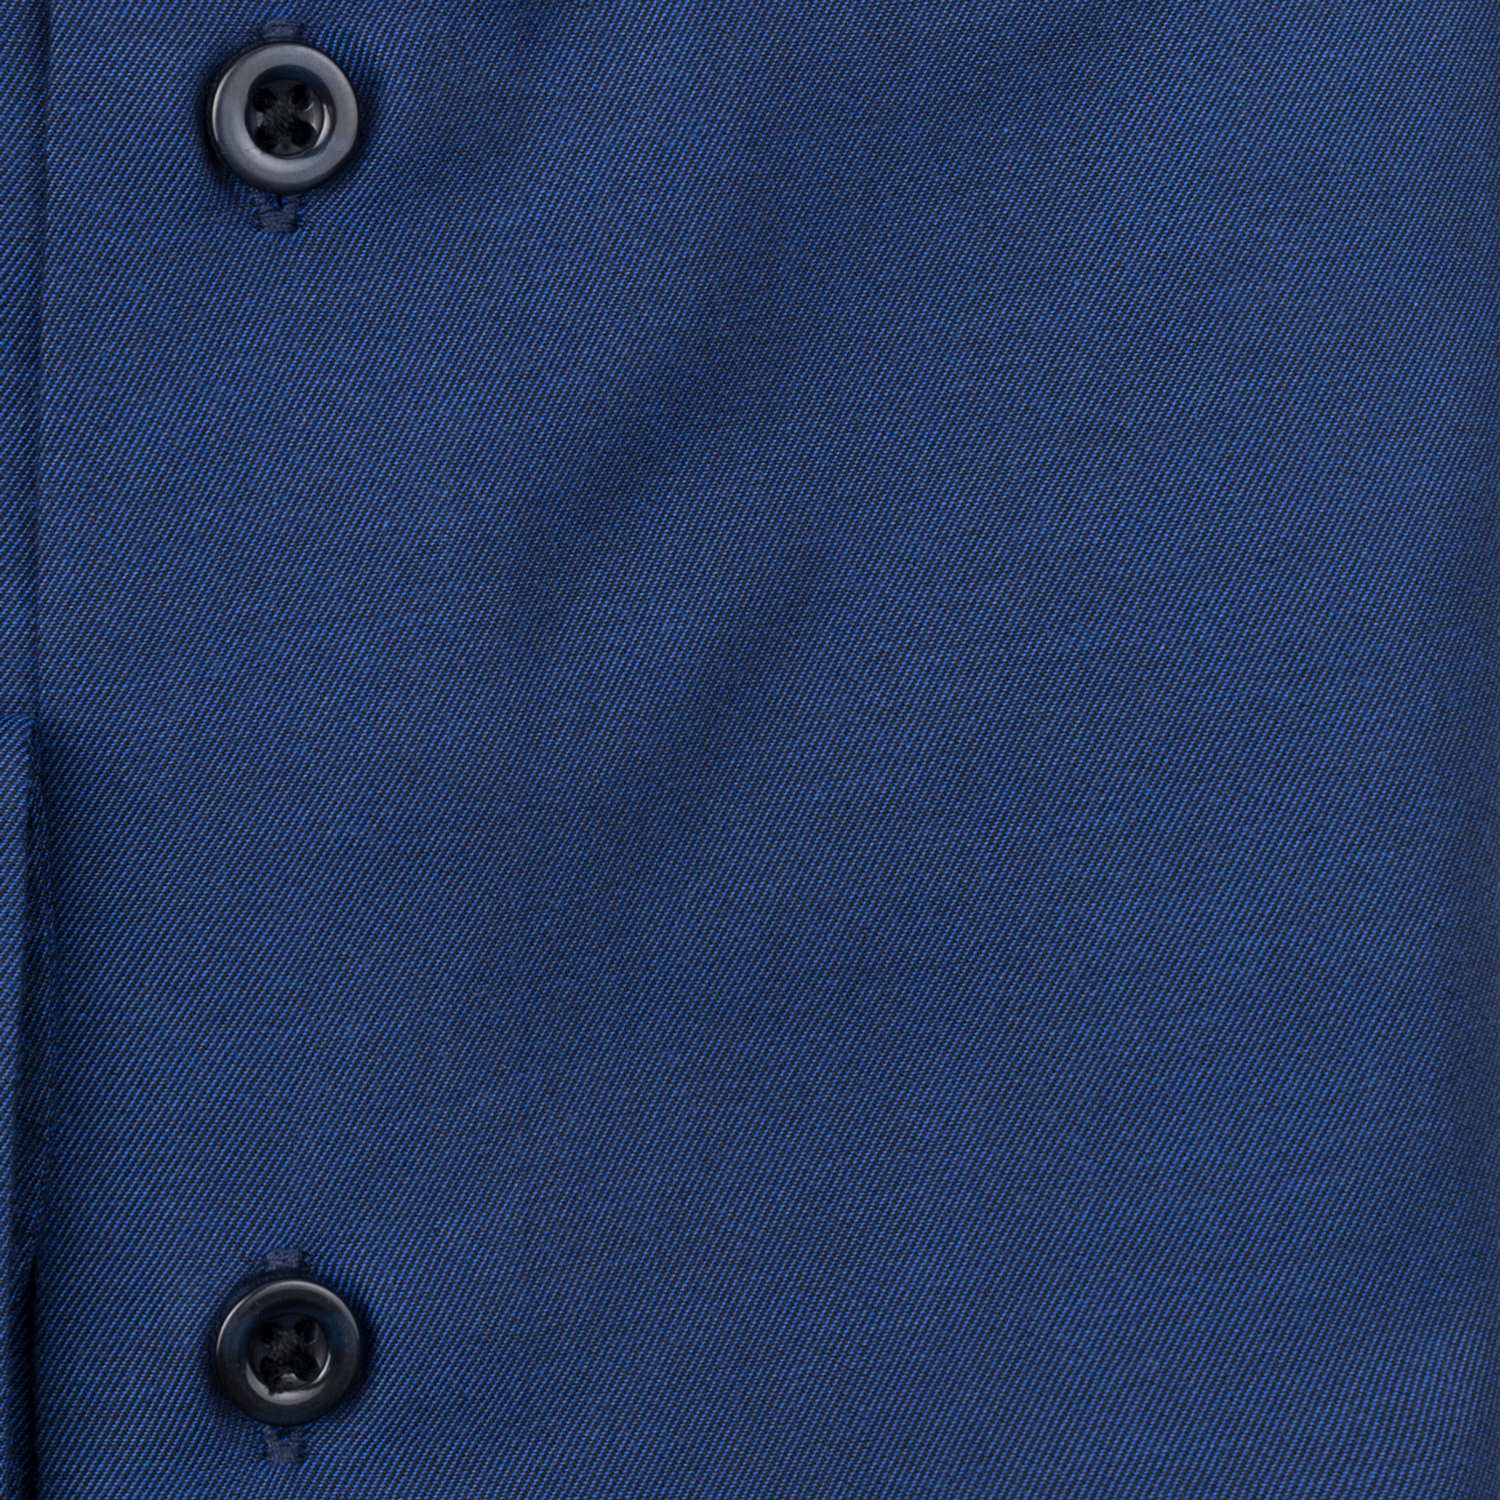 Bespoke - Dark Blue Tailored Shirt